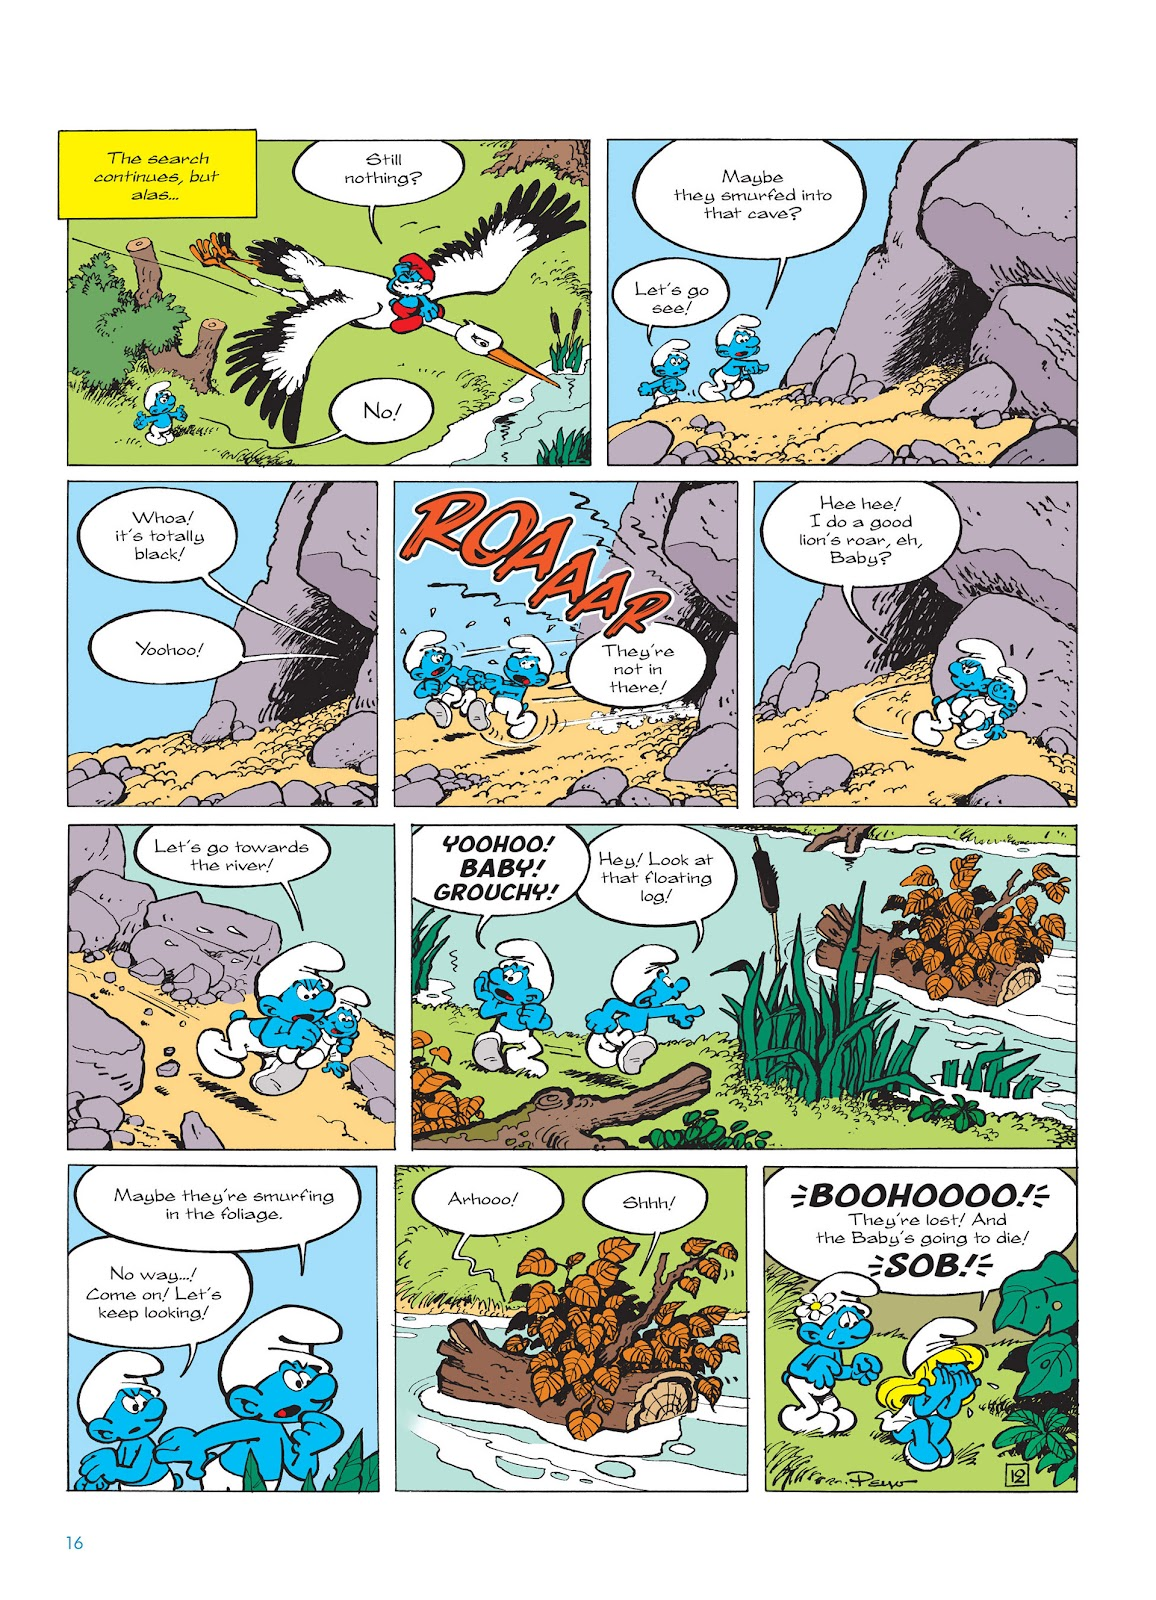 Read online The Smurfs comic -  Issue #14 - 17